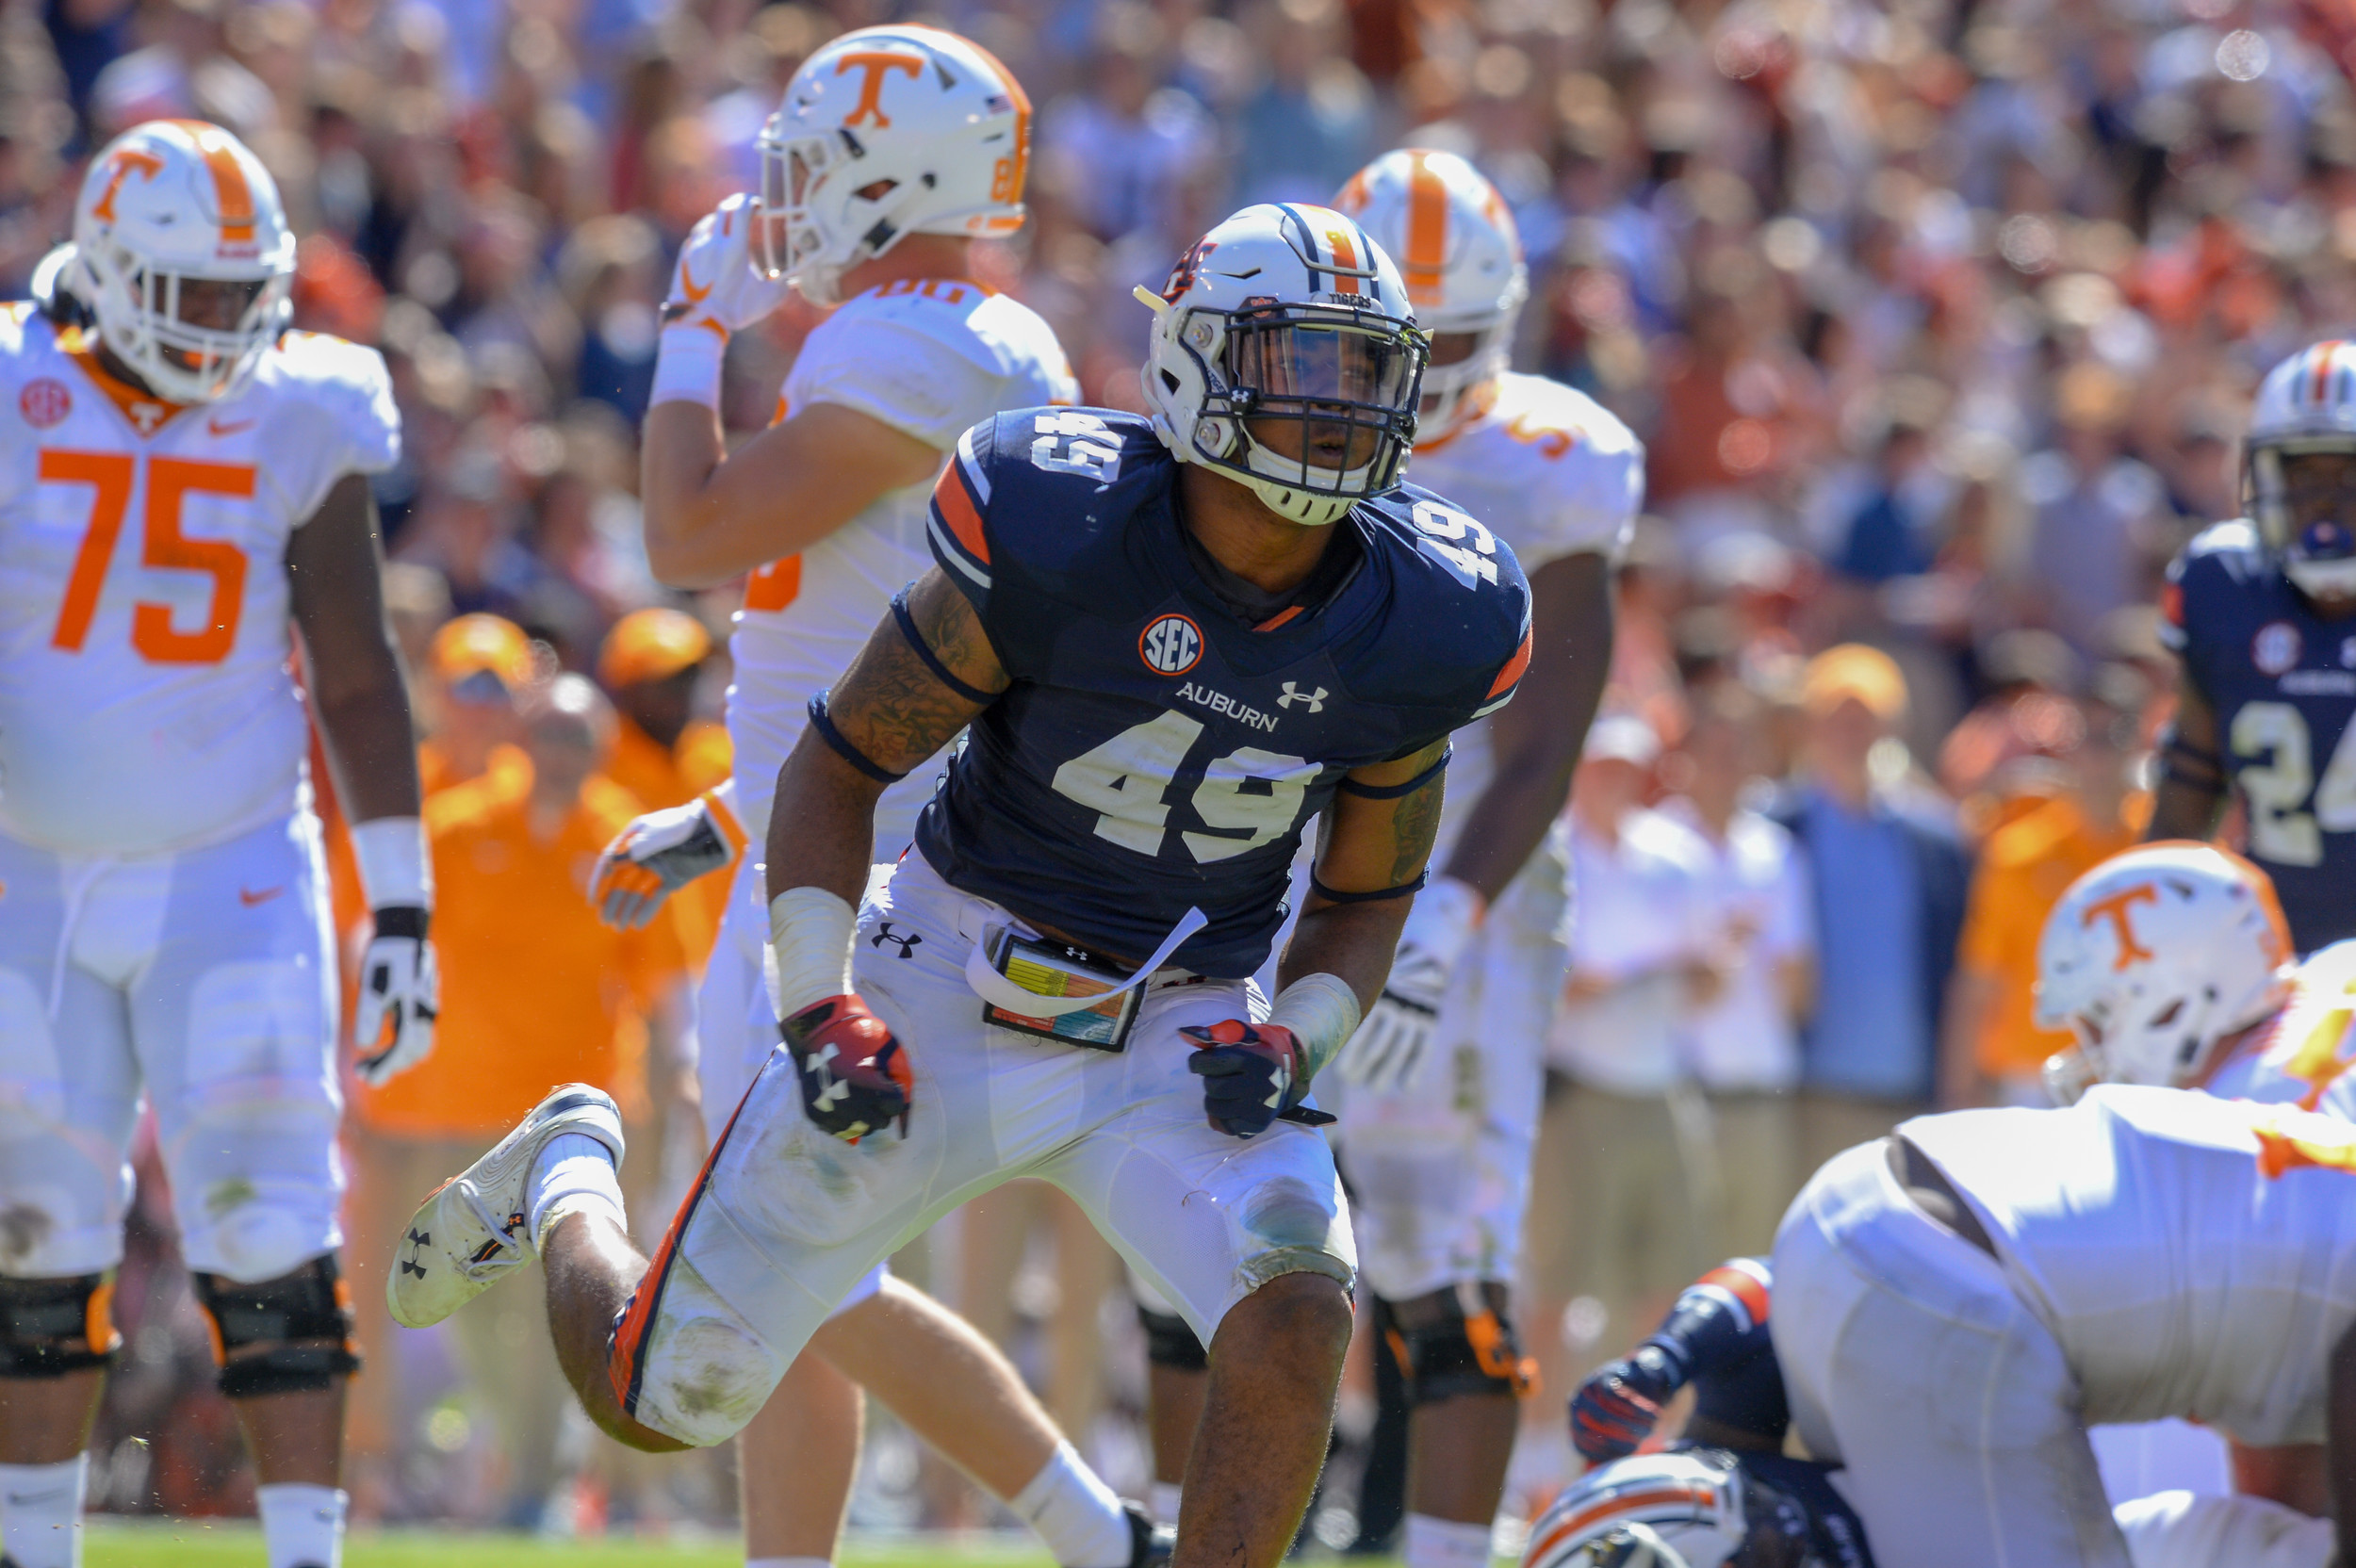 Auburn Tigers linebacker Darrell Williams (49) reacts after a tackle during the second half of Saturday's game, at Jordan-Hare Stadium in Auburn, AL. Daily Mountain Eagle -  Jeff Johnsey